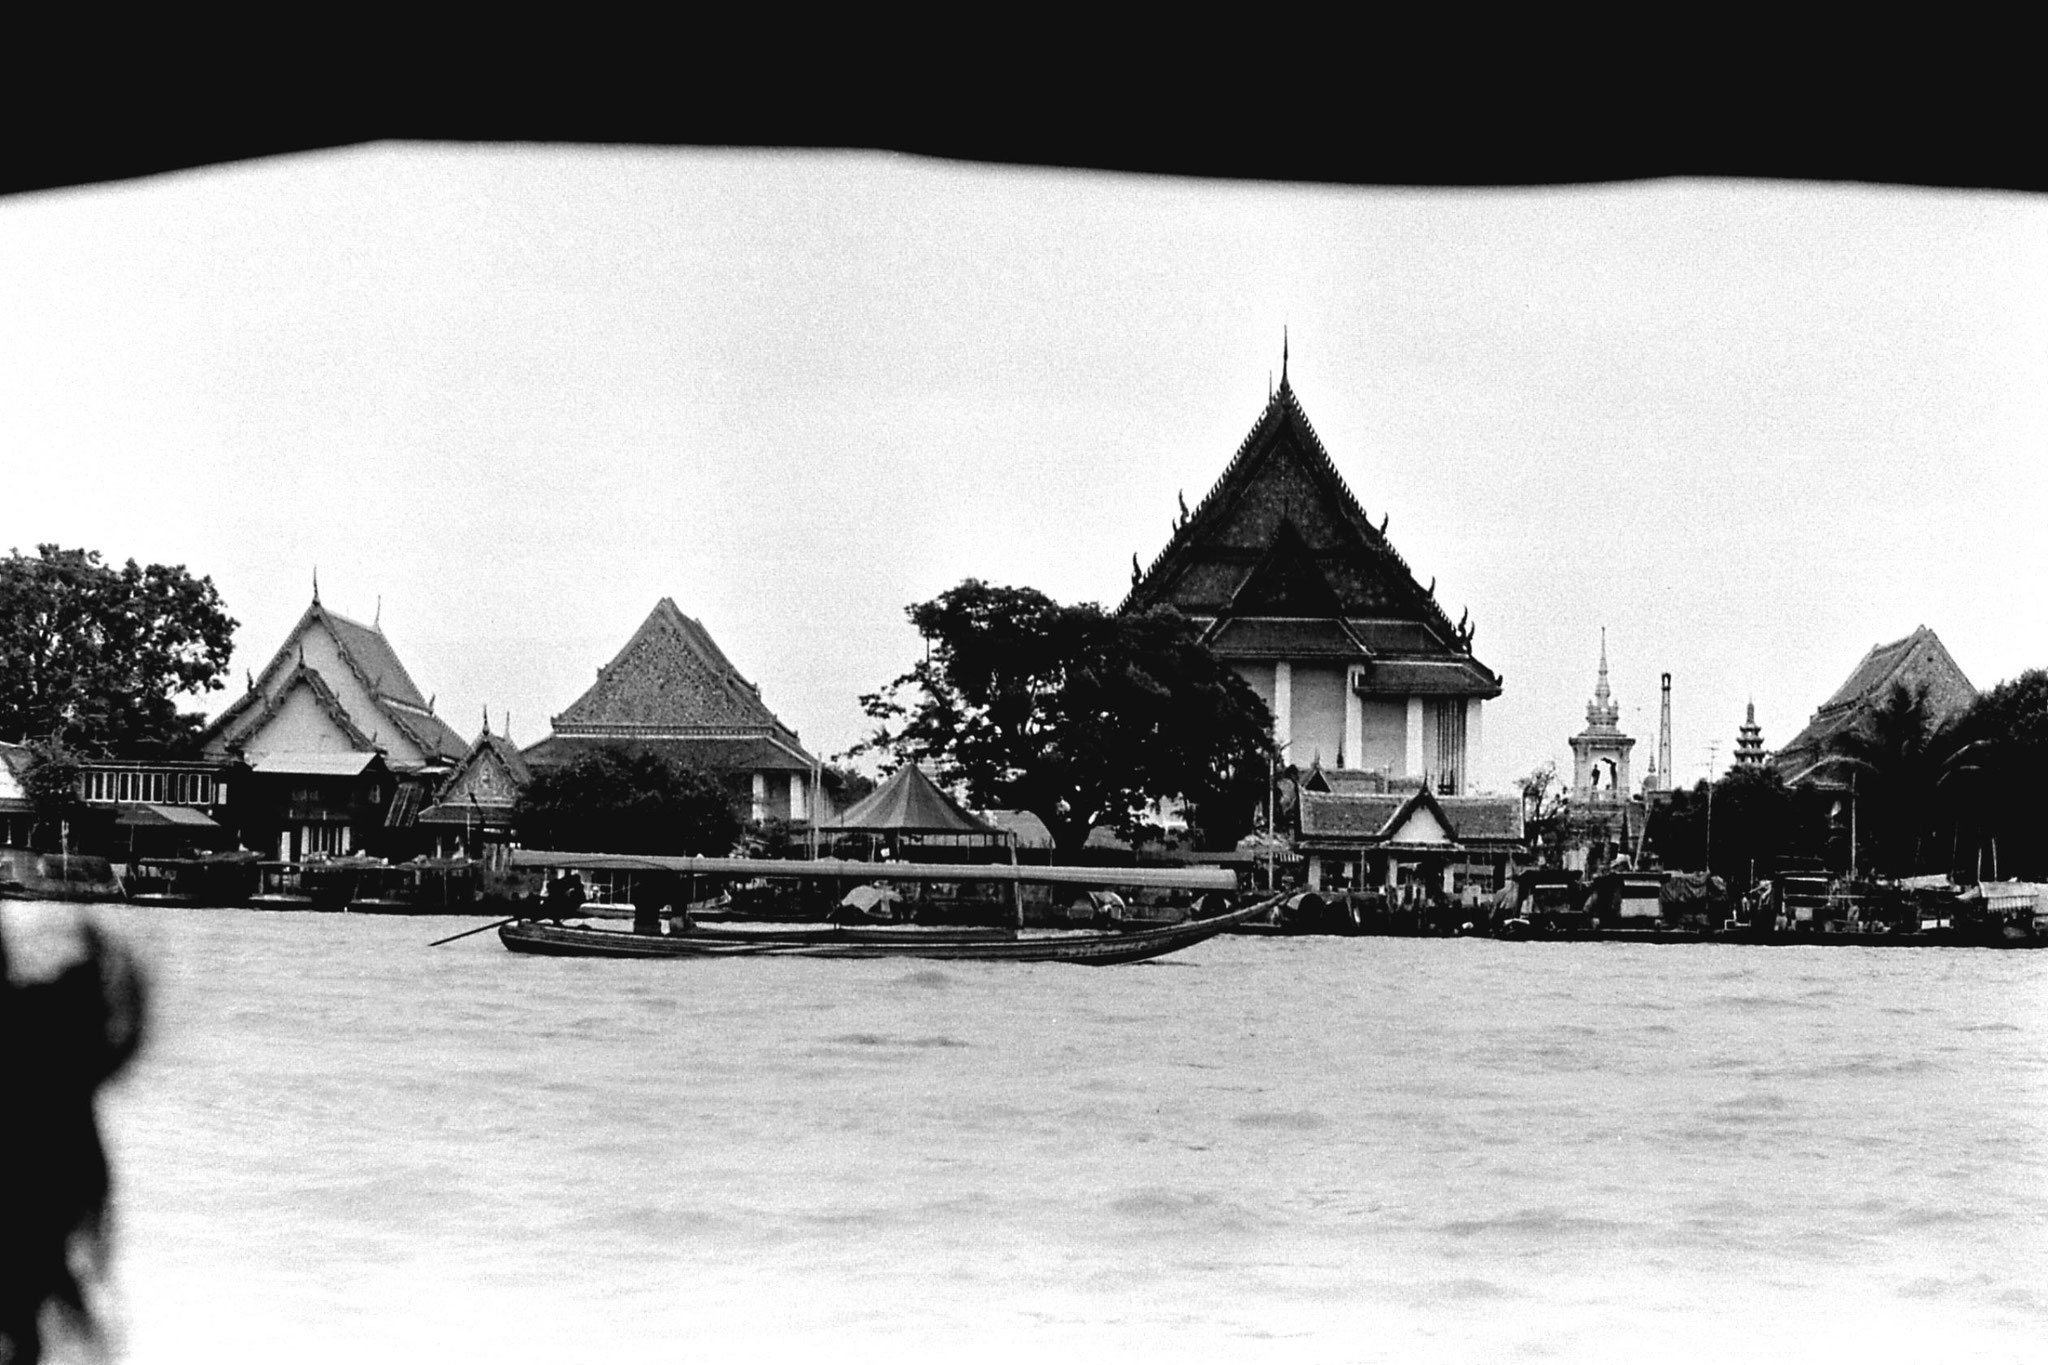 17/6/1990: 21: Bangkok, on the river Wat Kalayanamit